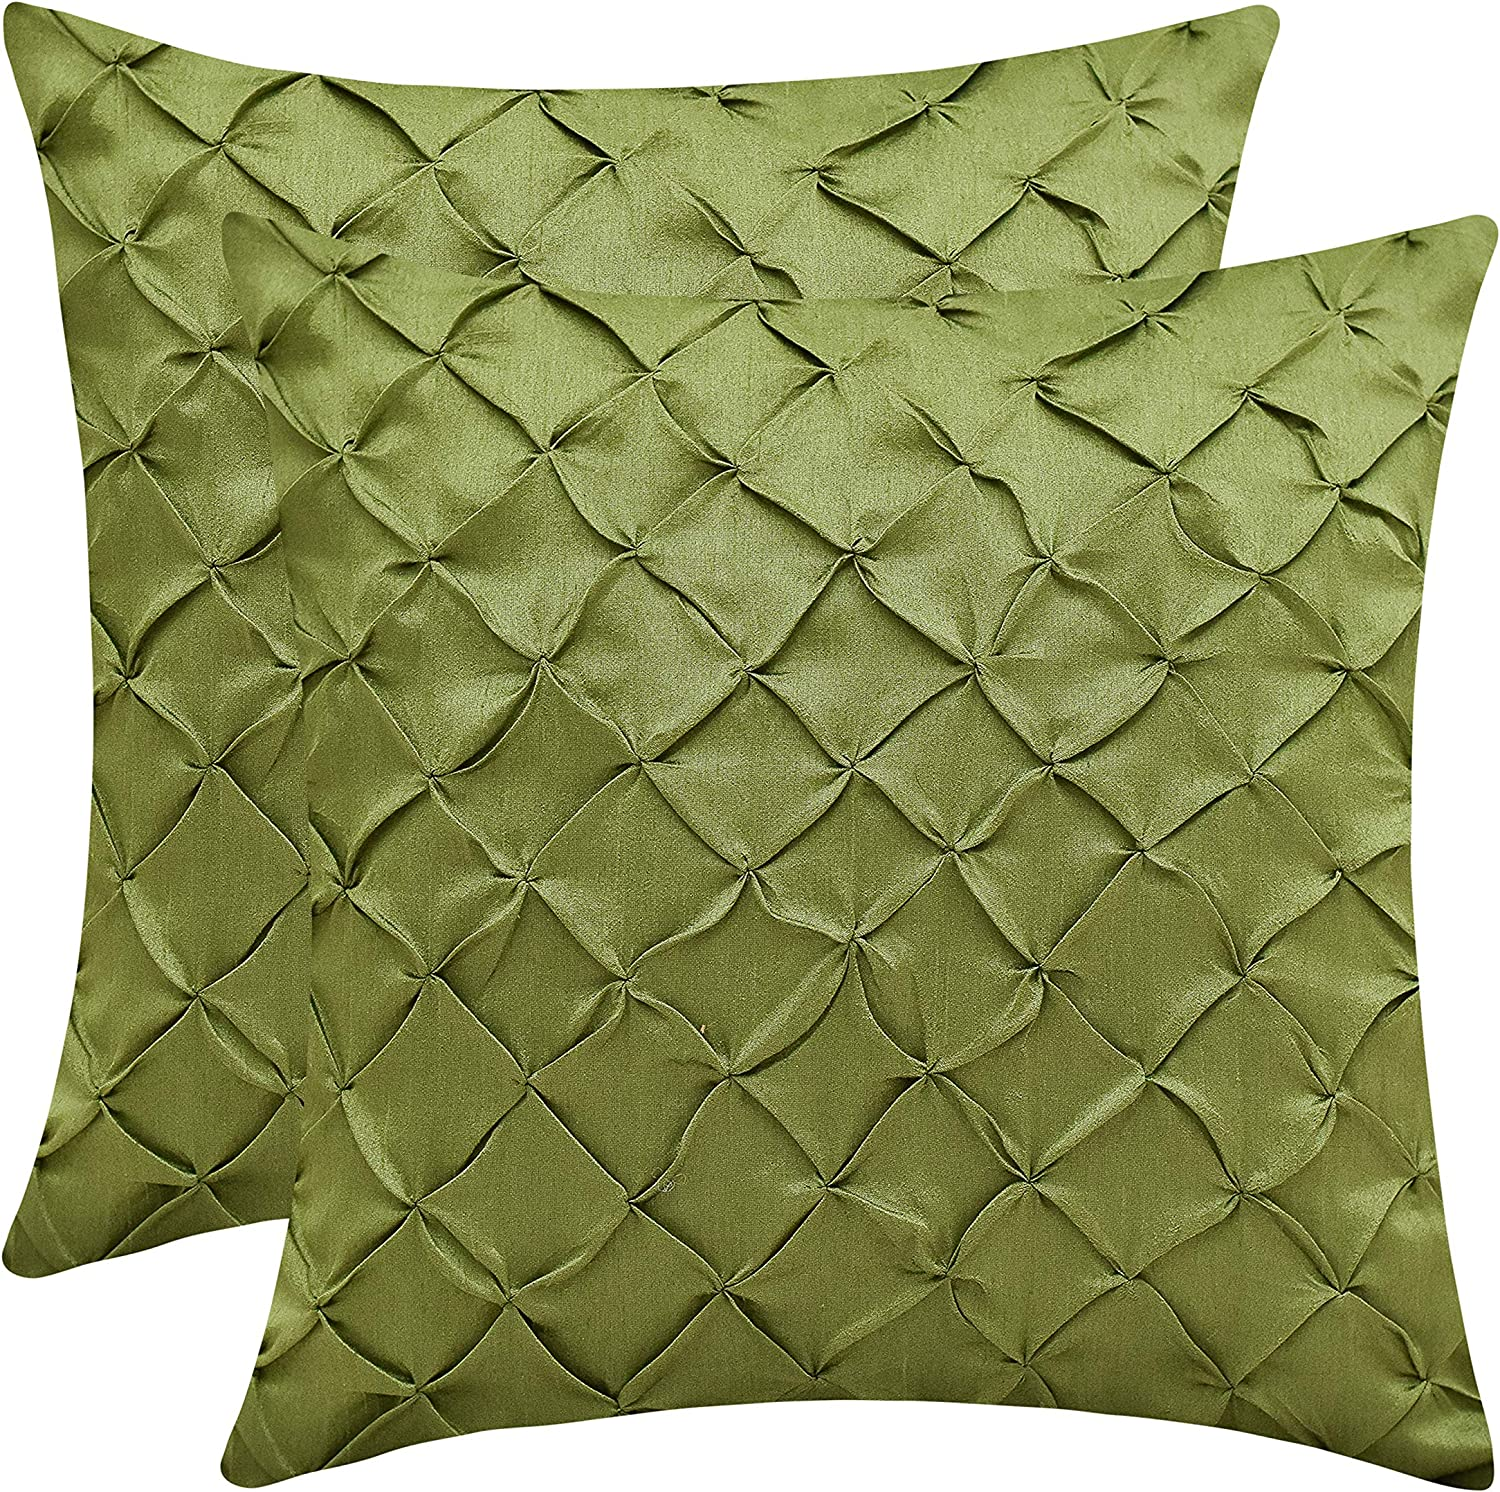 The White Petals Moss Green Throw Pillow Covers (Faux Silk, Pinch Pleat, 12x12 inch, Pack of 2)